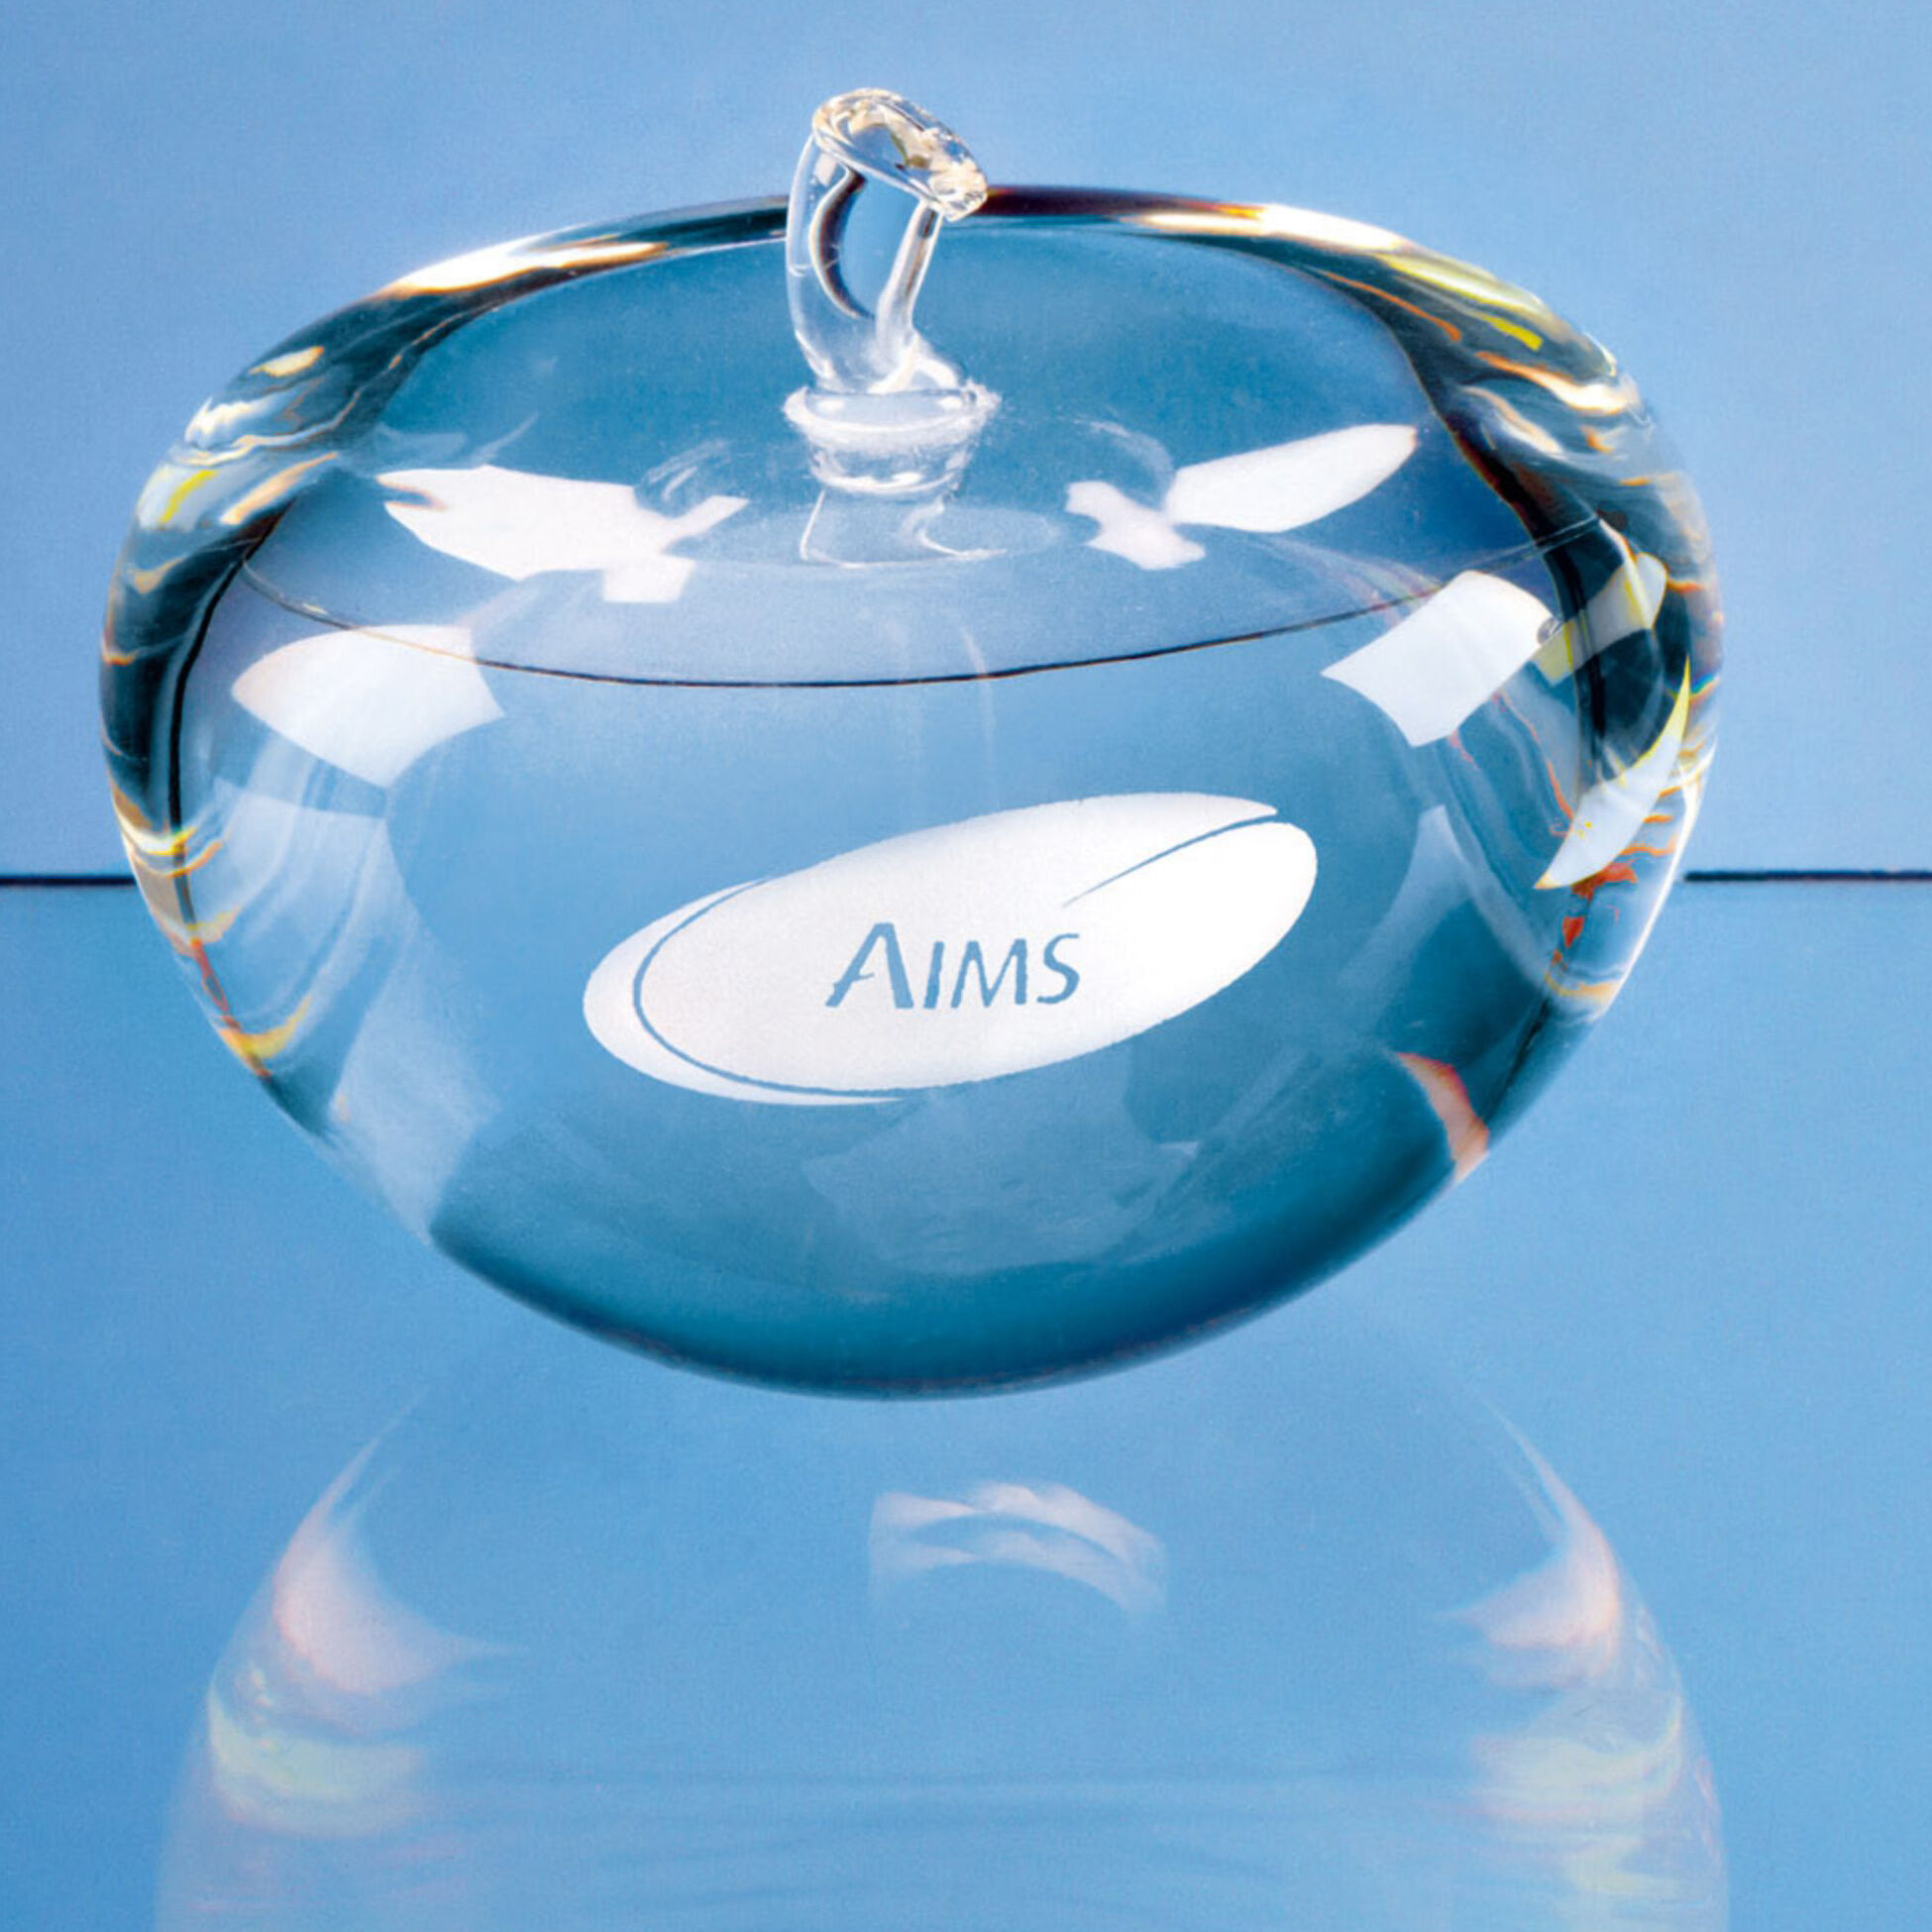 8cm Optical Crystal Clear Apple Paperweight